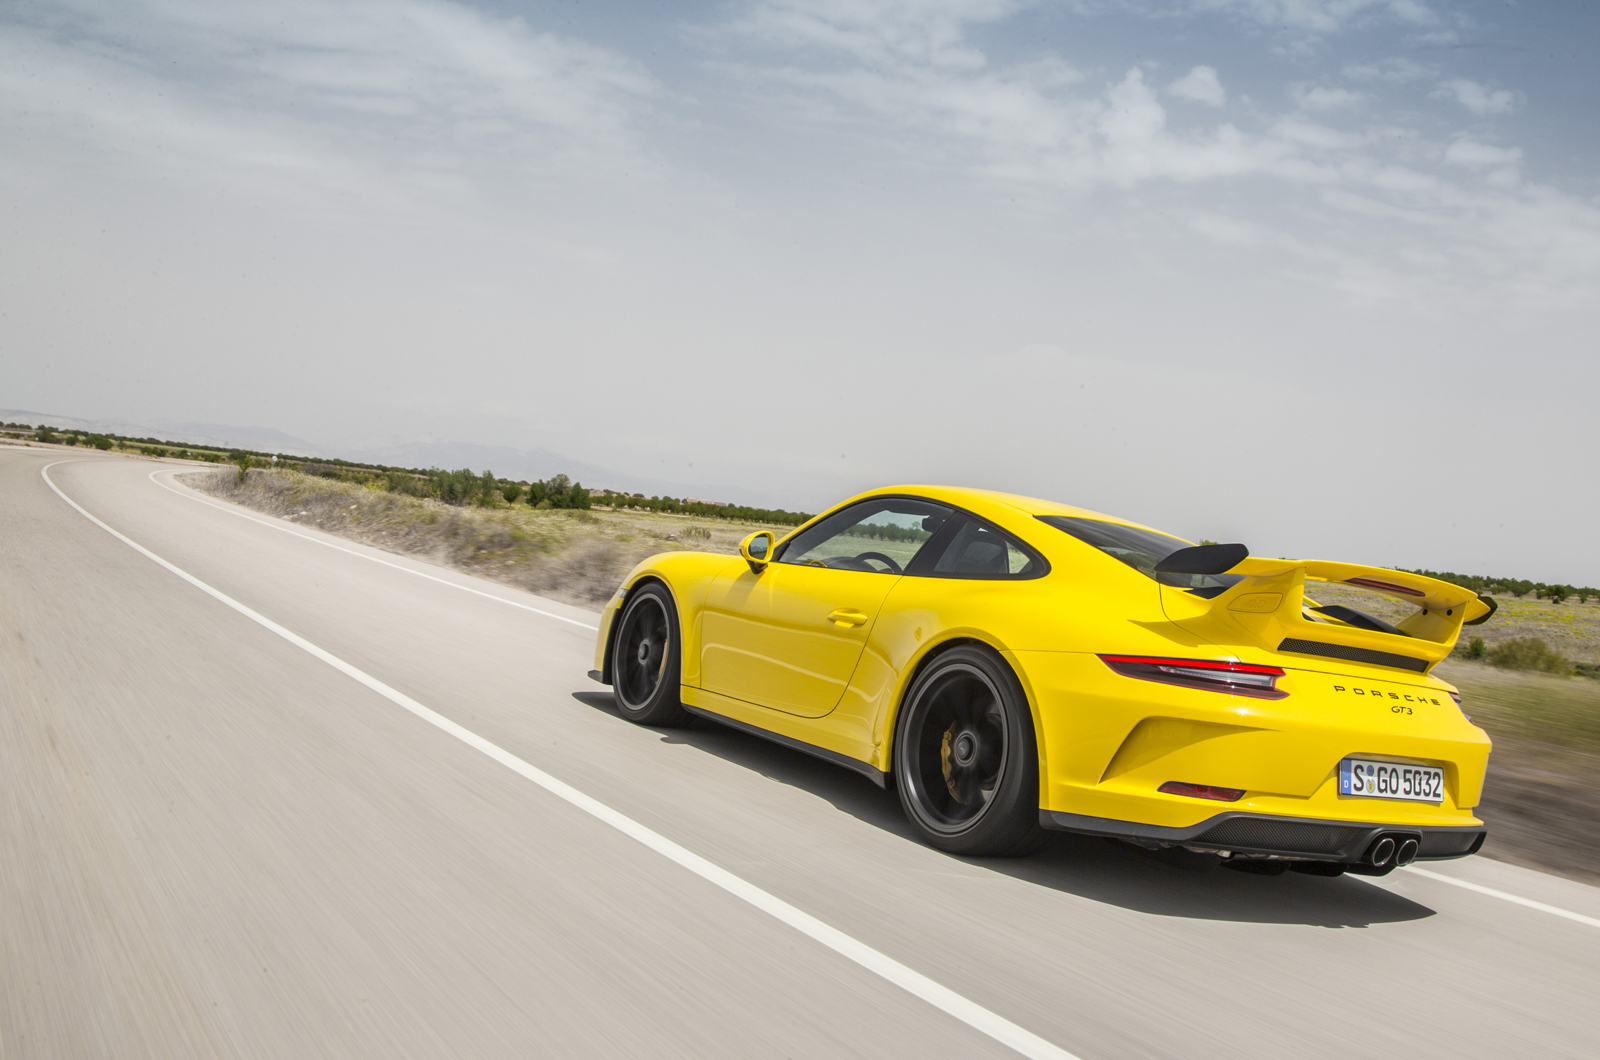 Porsche 911 gt3 rs review 2017 autocar - For A Start It Gets A Unique And Aggressively Styled Polyurathene Front Bumper That Weighs Less Than Before And Features A More Prominent Splitter Element